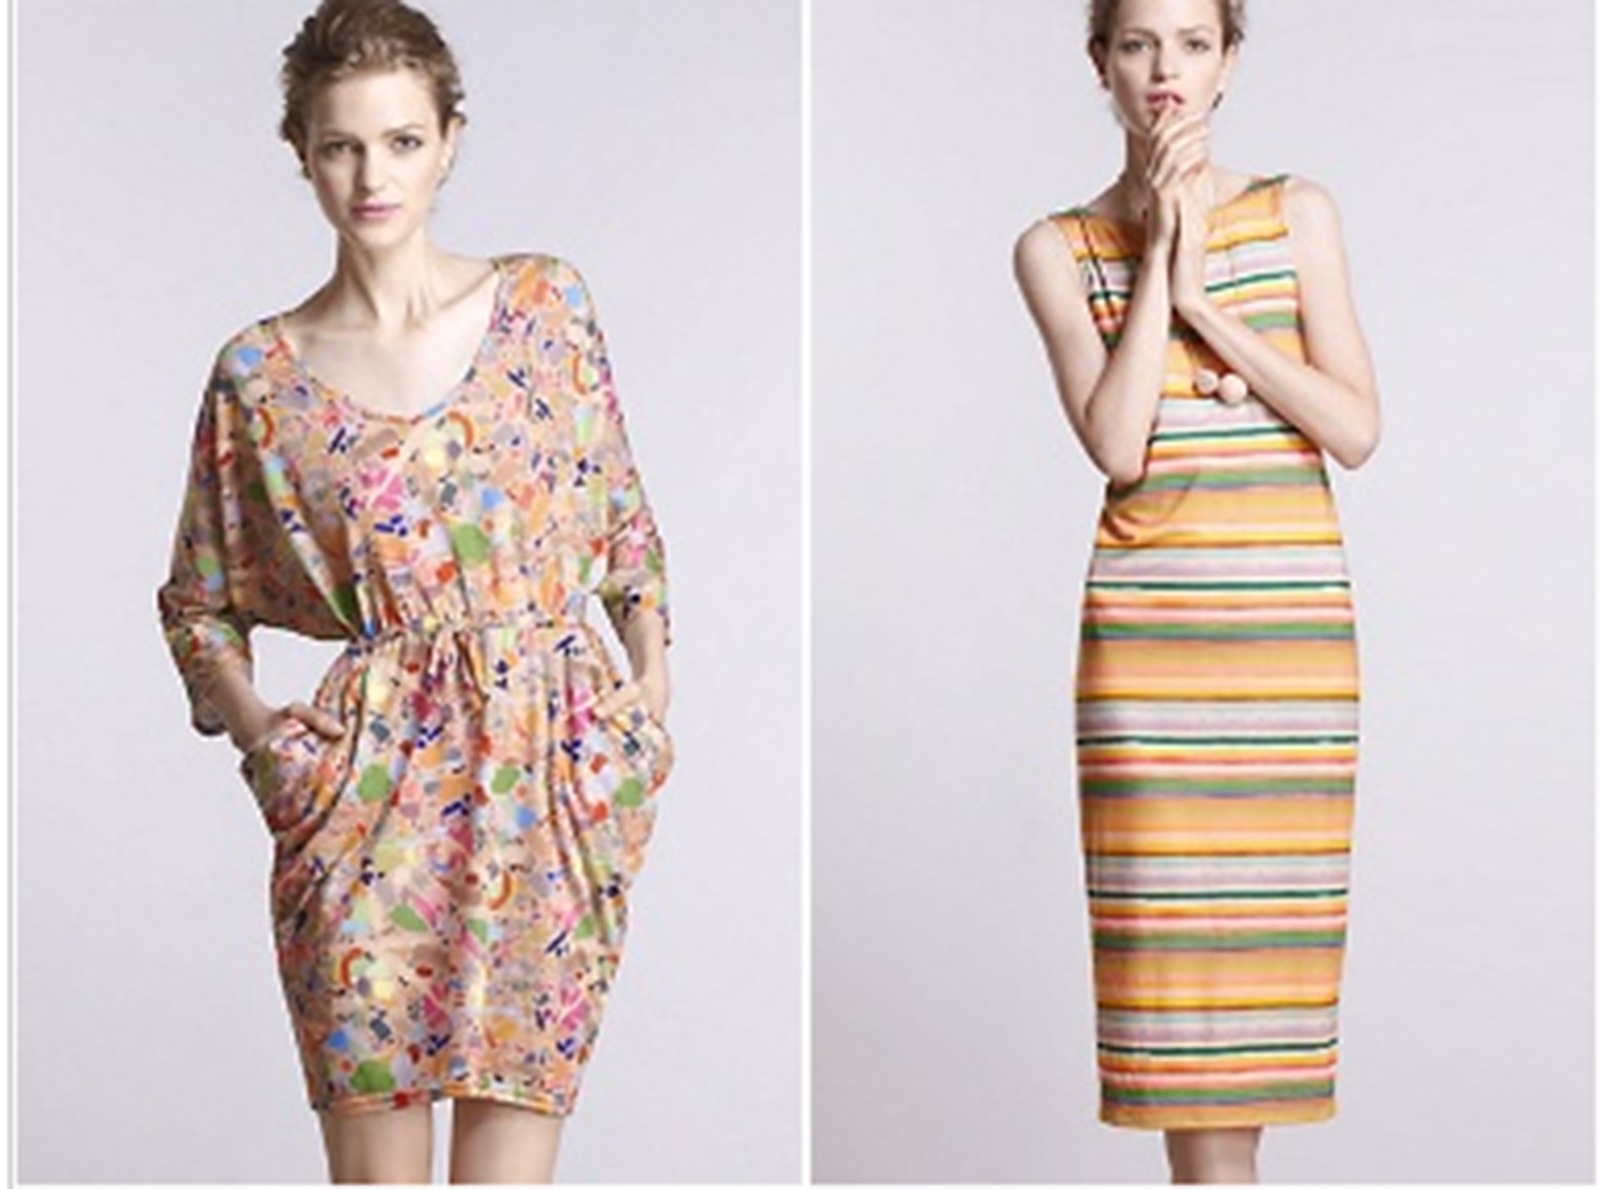 Mission-Based Artist Debuts Collaborative Collection With Anthropologie